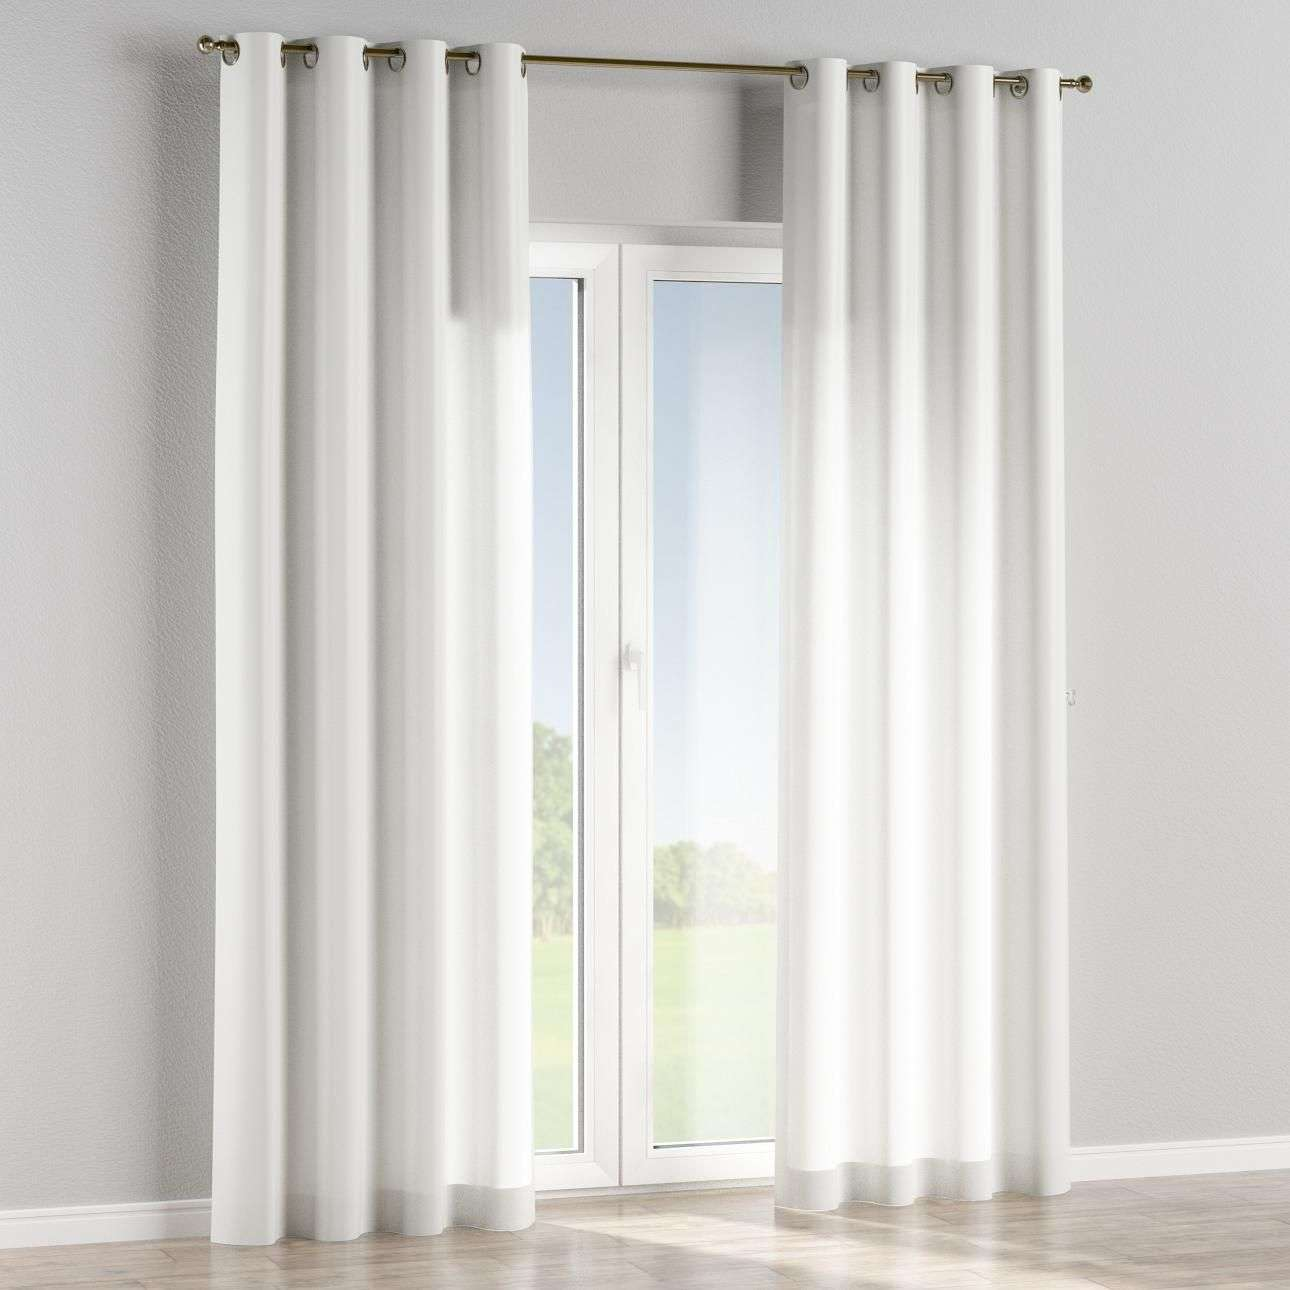 Eyelet curtains in collection SALE, fabric: 104-01